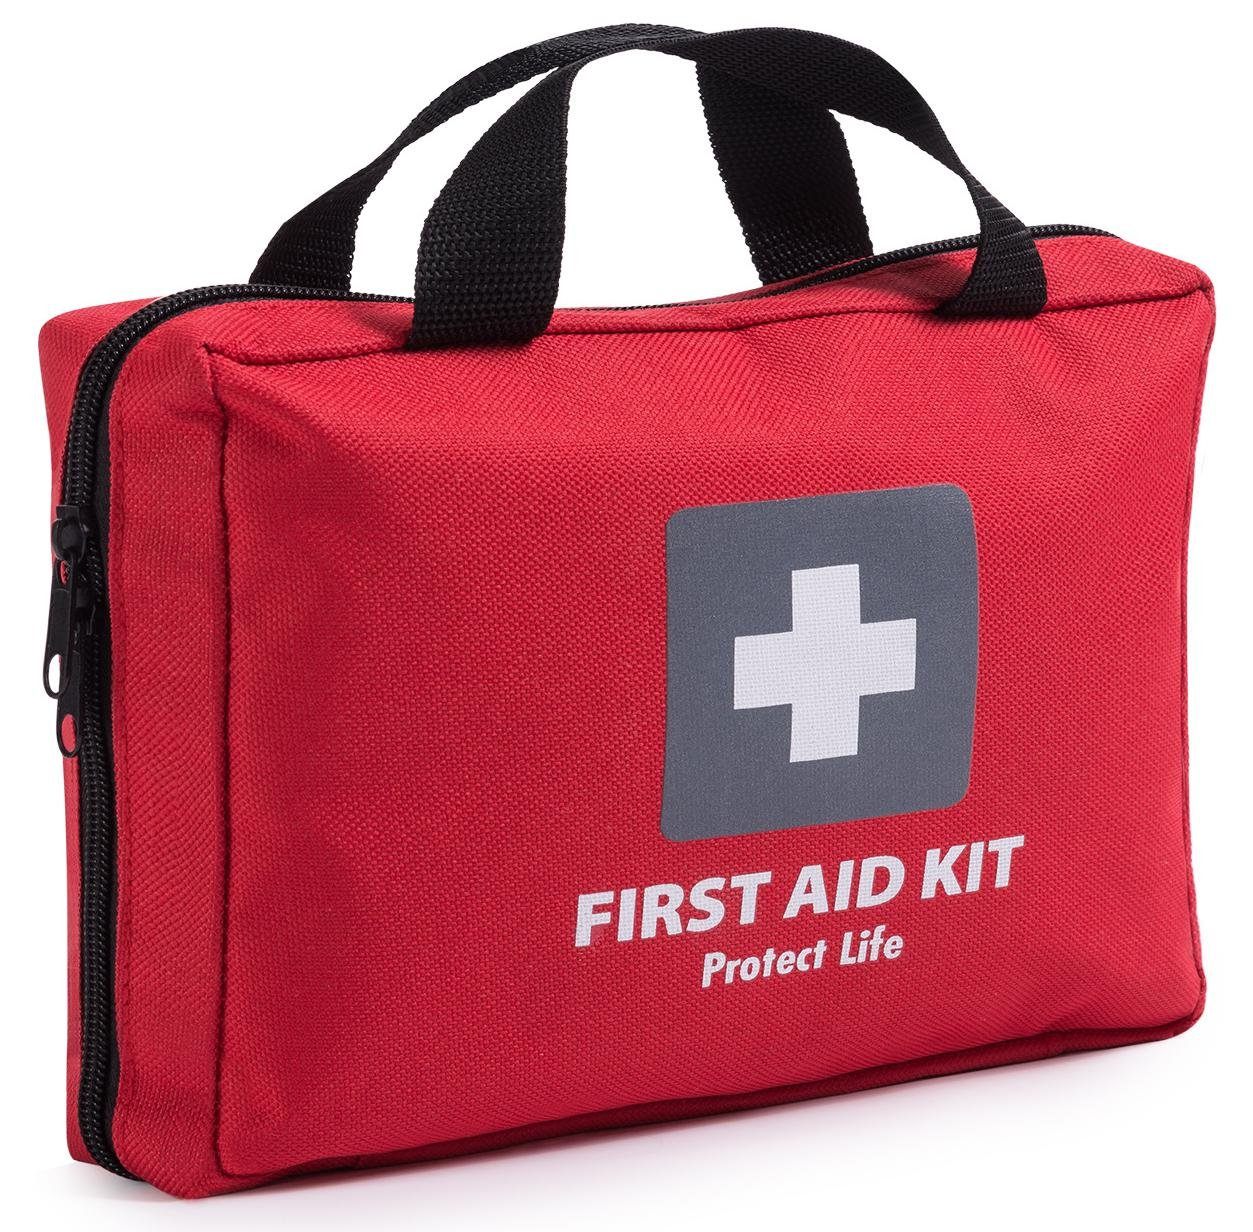 a57b66c598d Amazon.com  First Aid Kit - 200 piece - for Car, Home, Travel, Camping,  Office or Sports   Red bag w reflective cross, fully stocked with essential  supplies ...